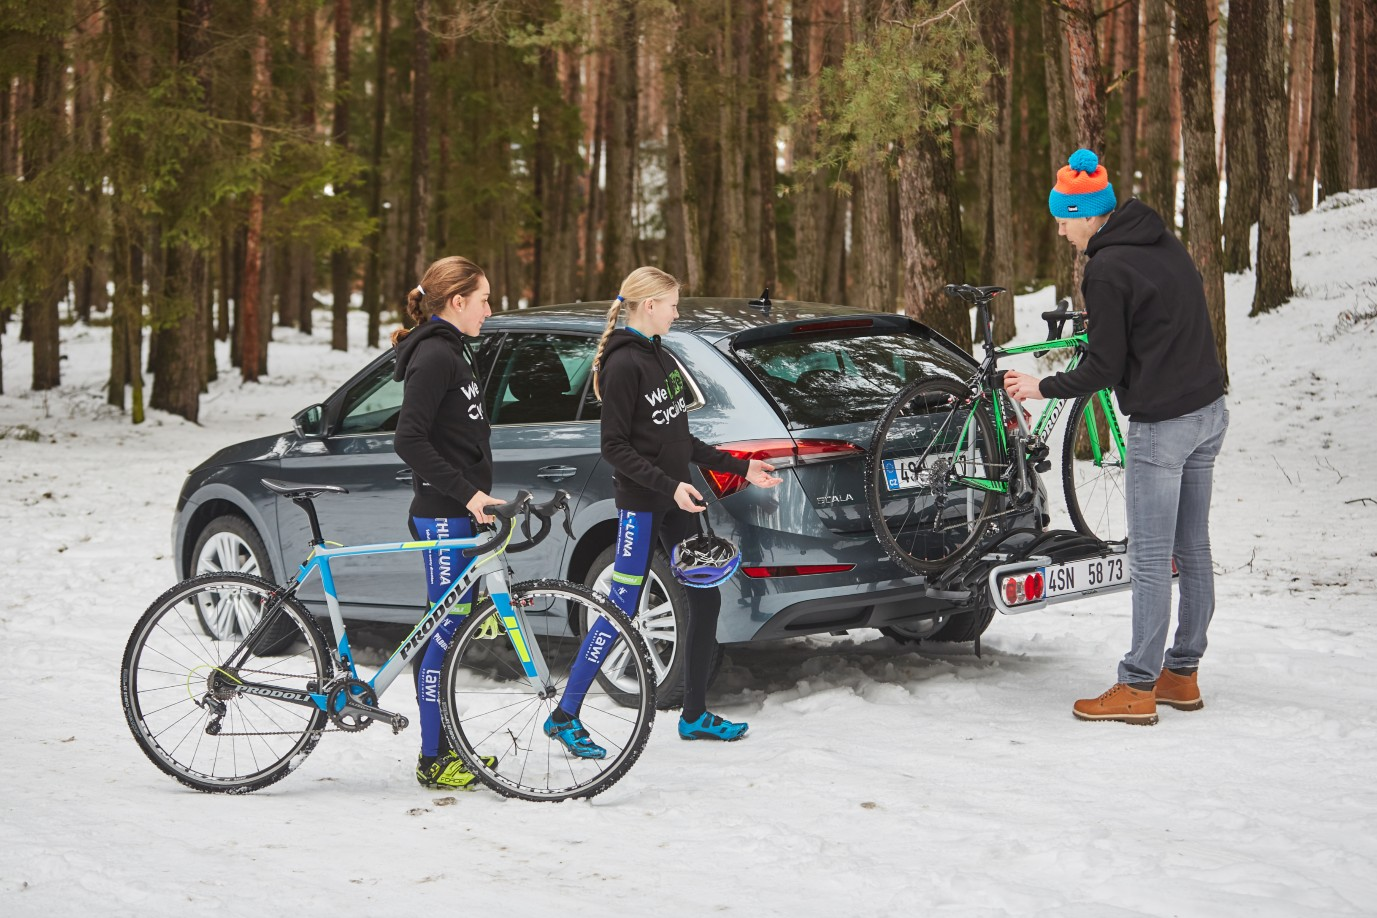 We Used the ŠKODA SCALA for a Winter Cyclocross Training Session - We Love Cycling magazine